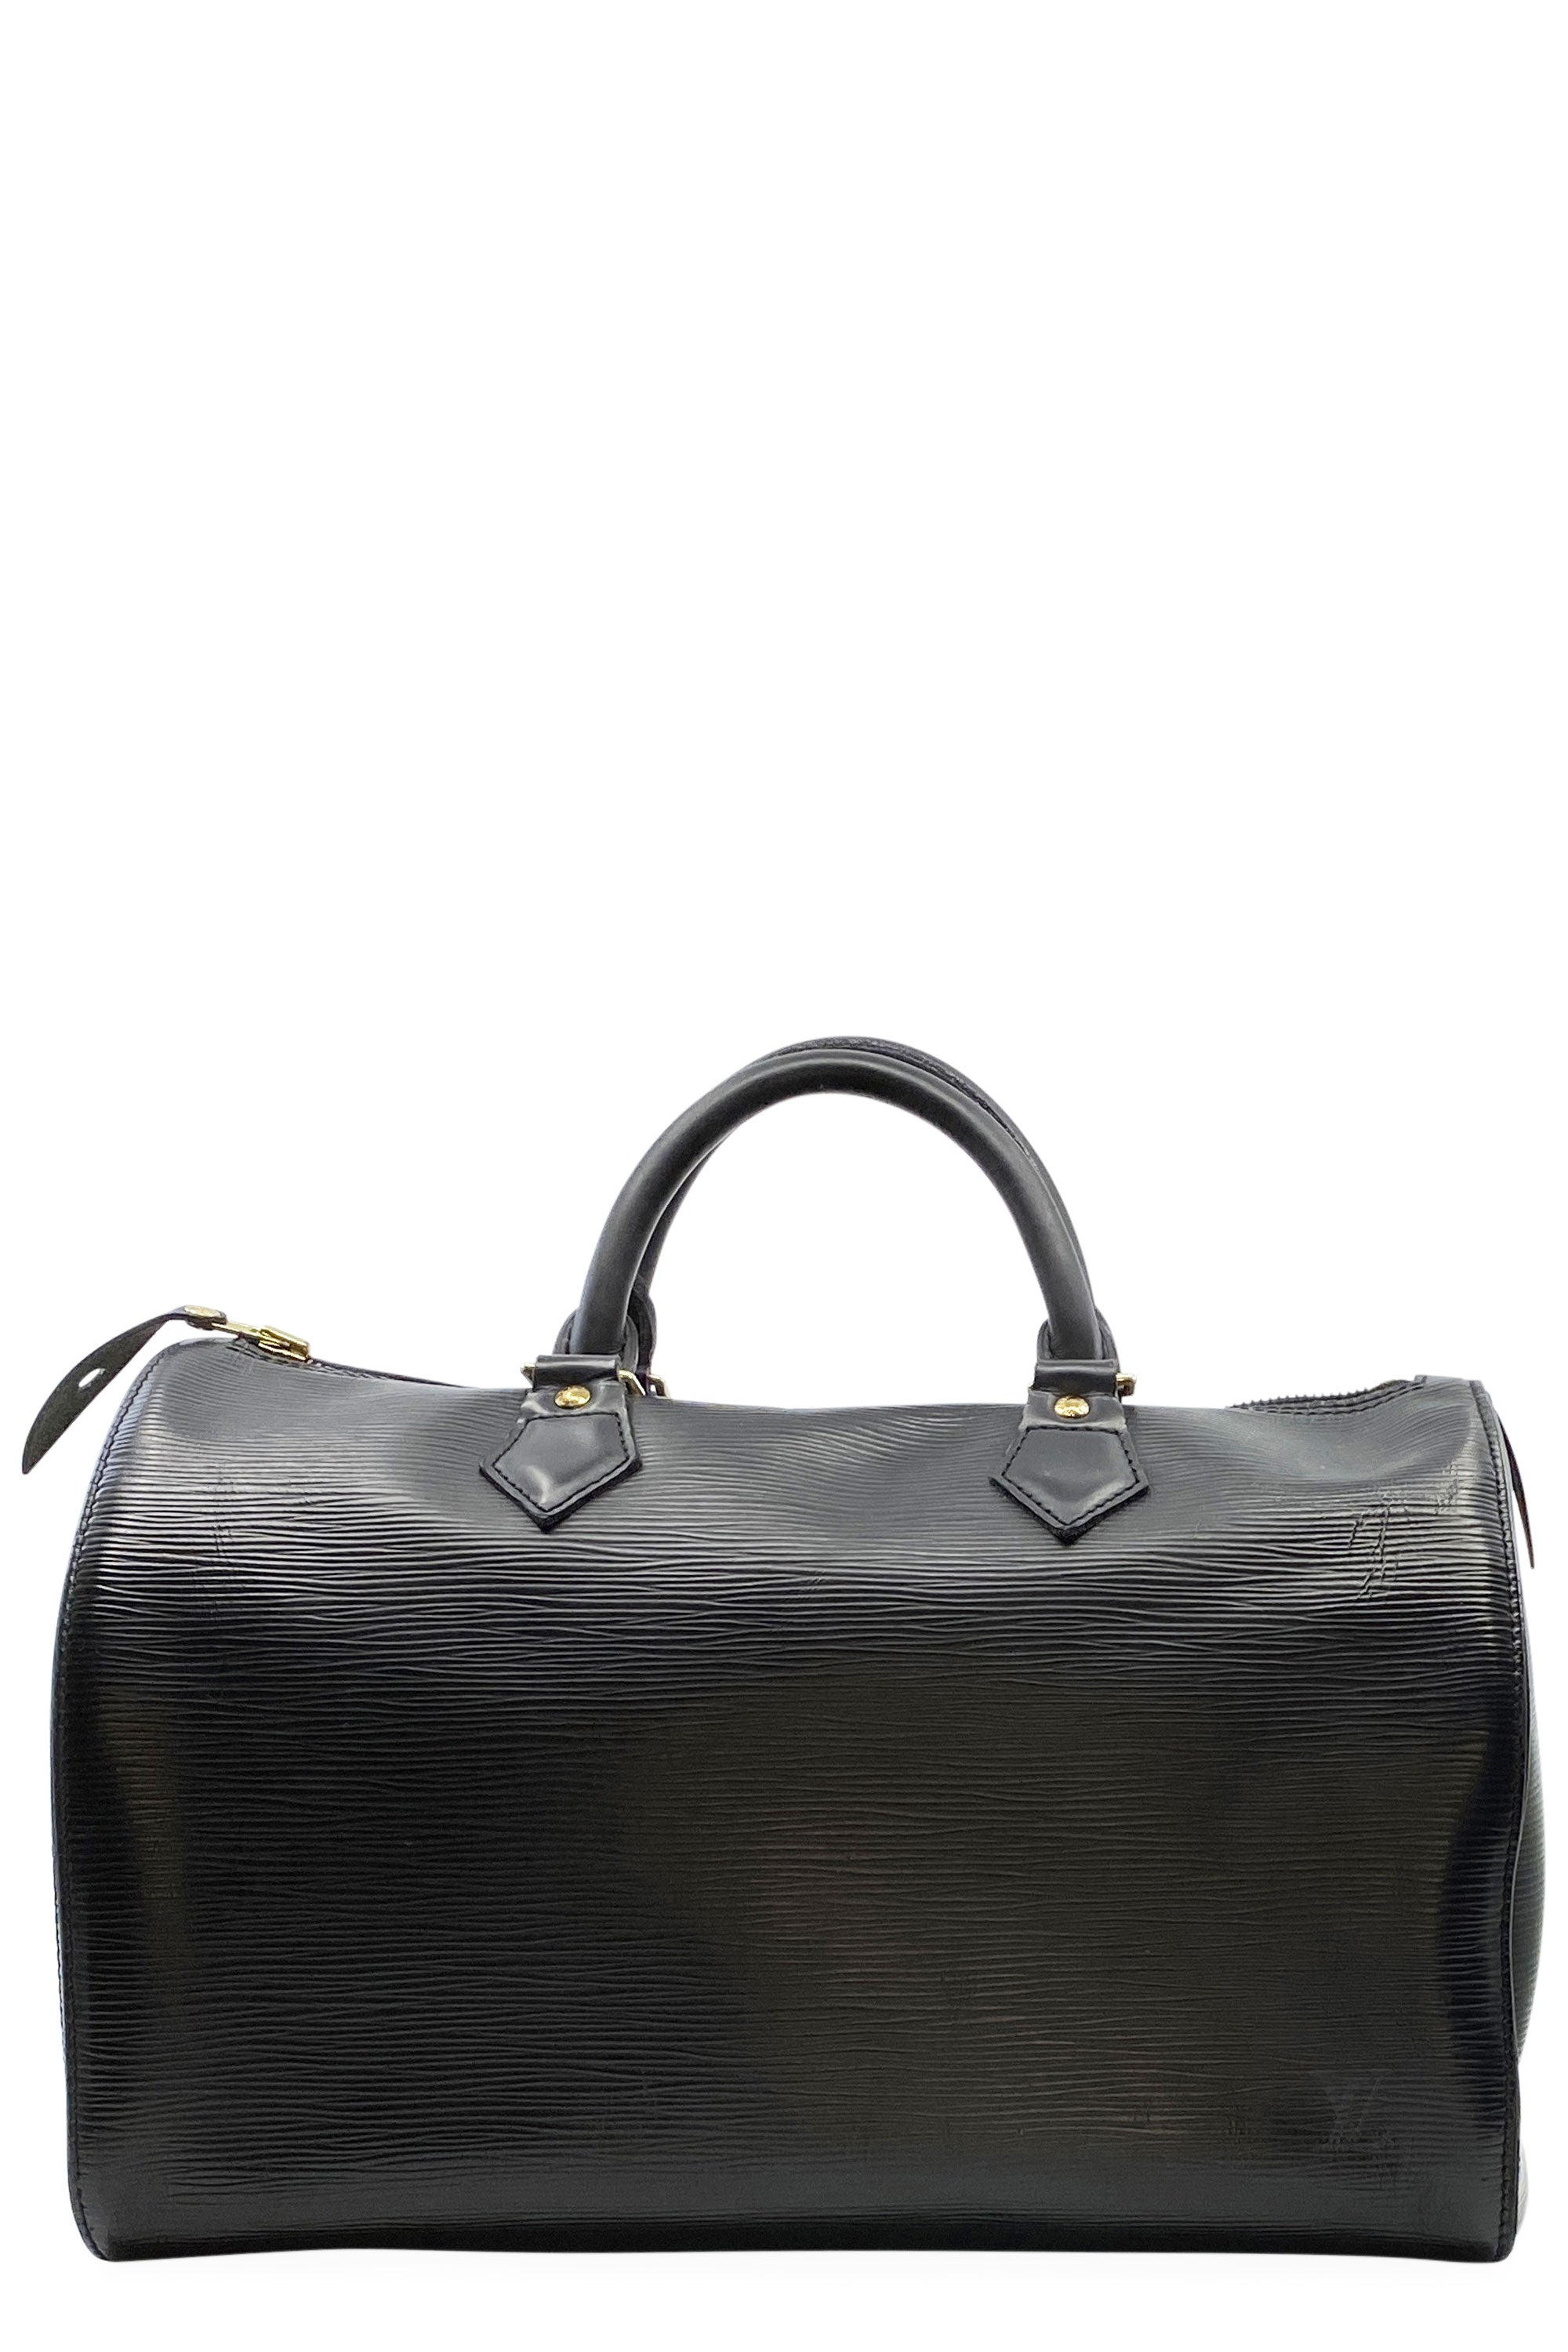 LOUIS VUITTON Speedy 30 Epi Black Frontansicht